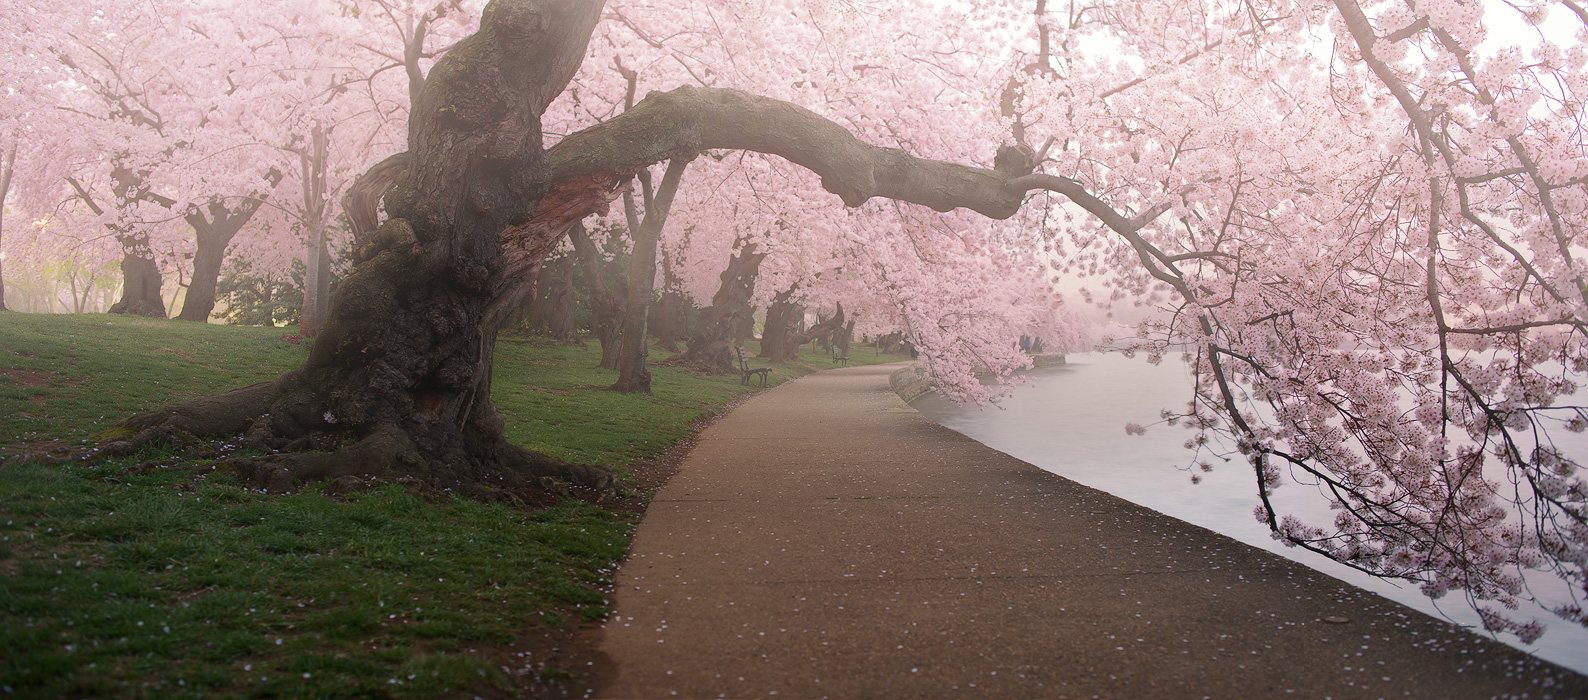 A Morning To Remember, Washington DC, cherry blossom, blossoms, tidal basin, spring, april, pink, solitude, walkway, quiet, bernard chen, timescapes, photo